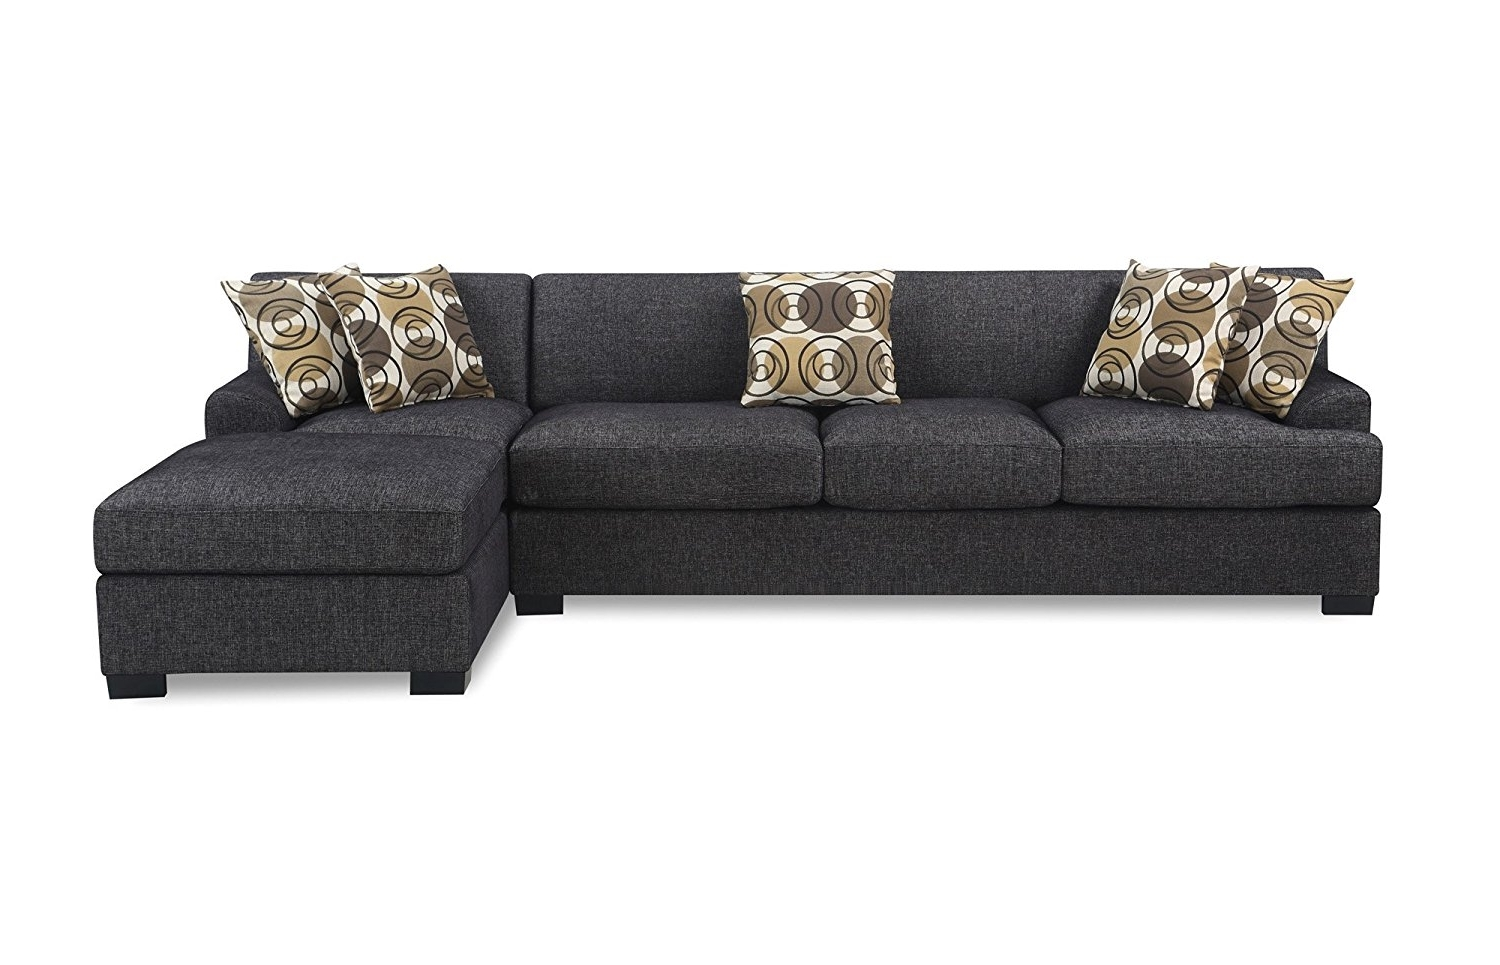 Amazon: Bobkona Benford 2 Piece Chaise Loveseat Sectional Sofa Regarding Most Up To Date Sectional Sofa Chaises (View 1 of 15)